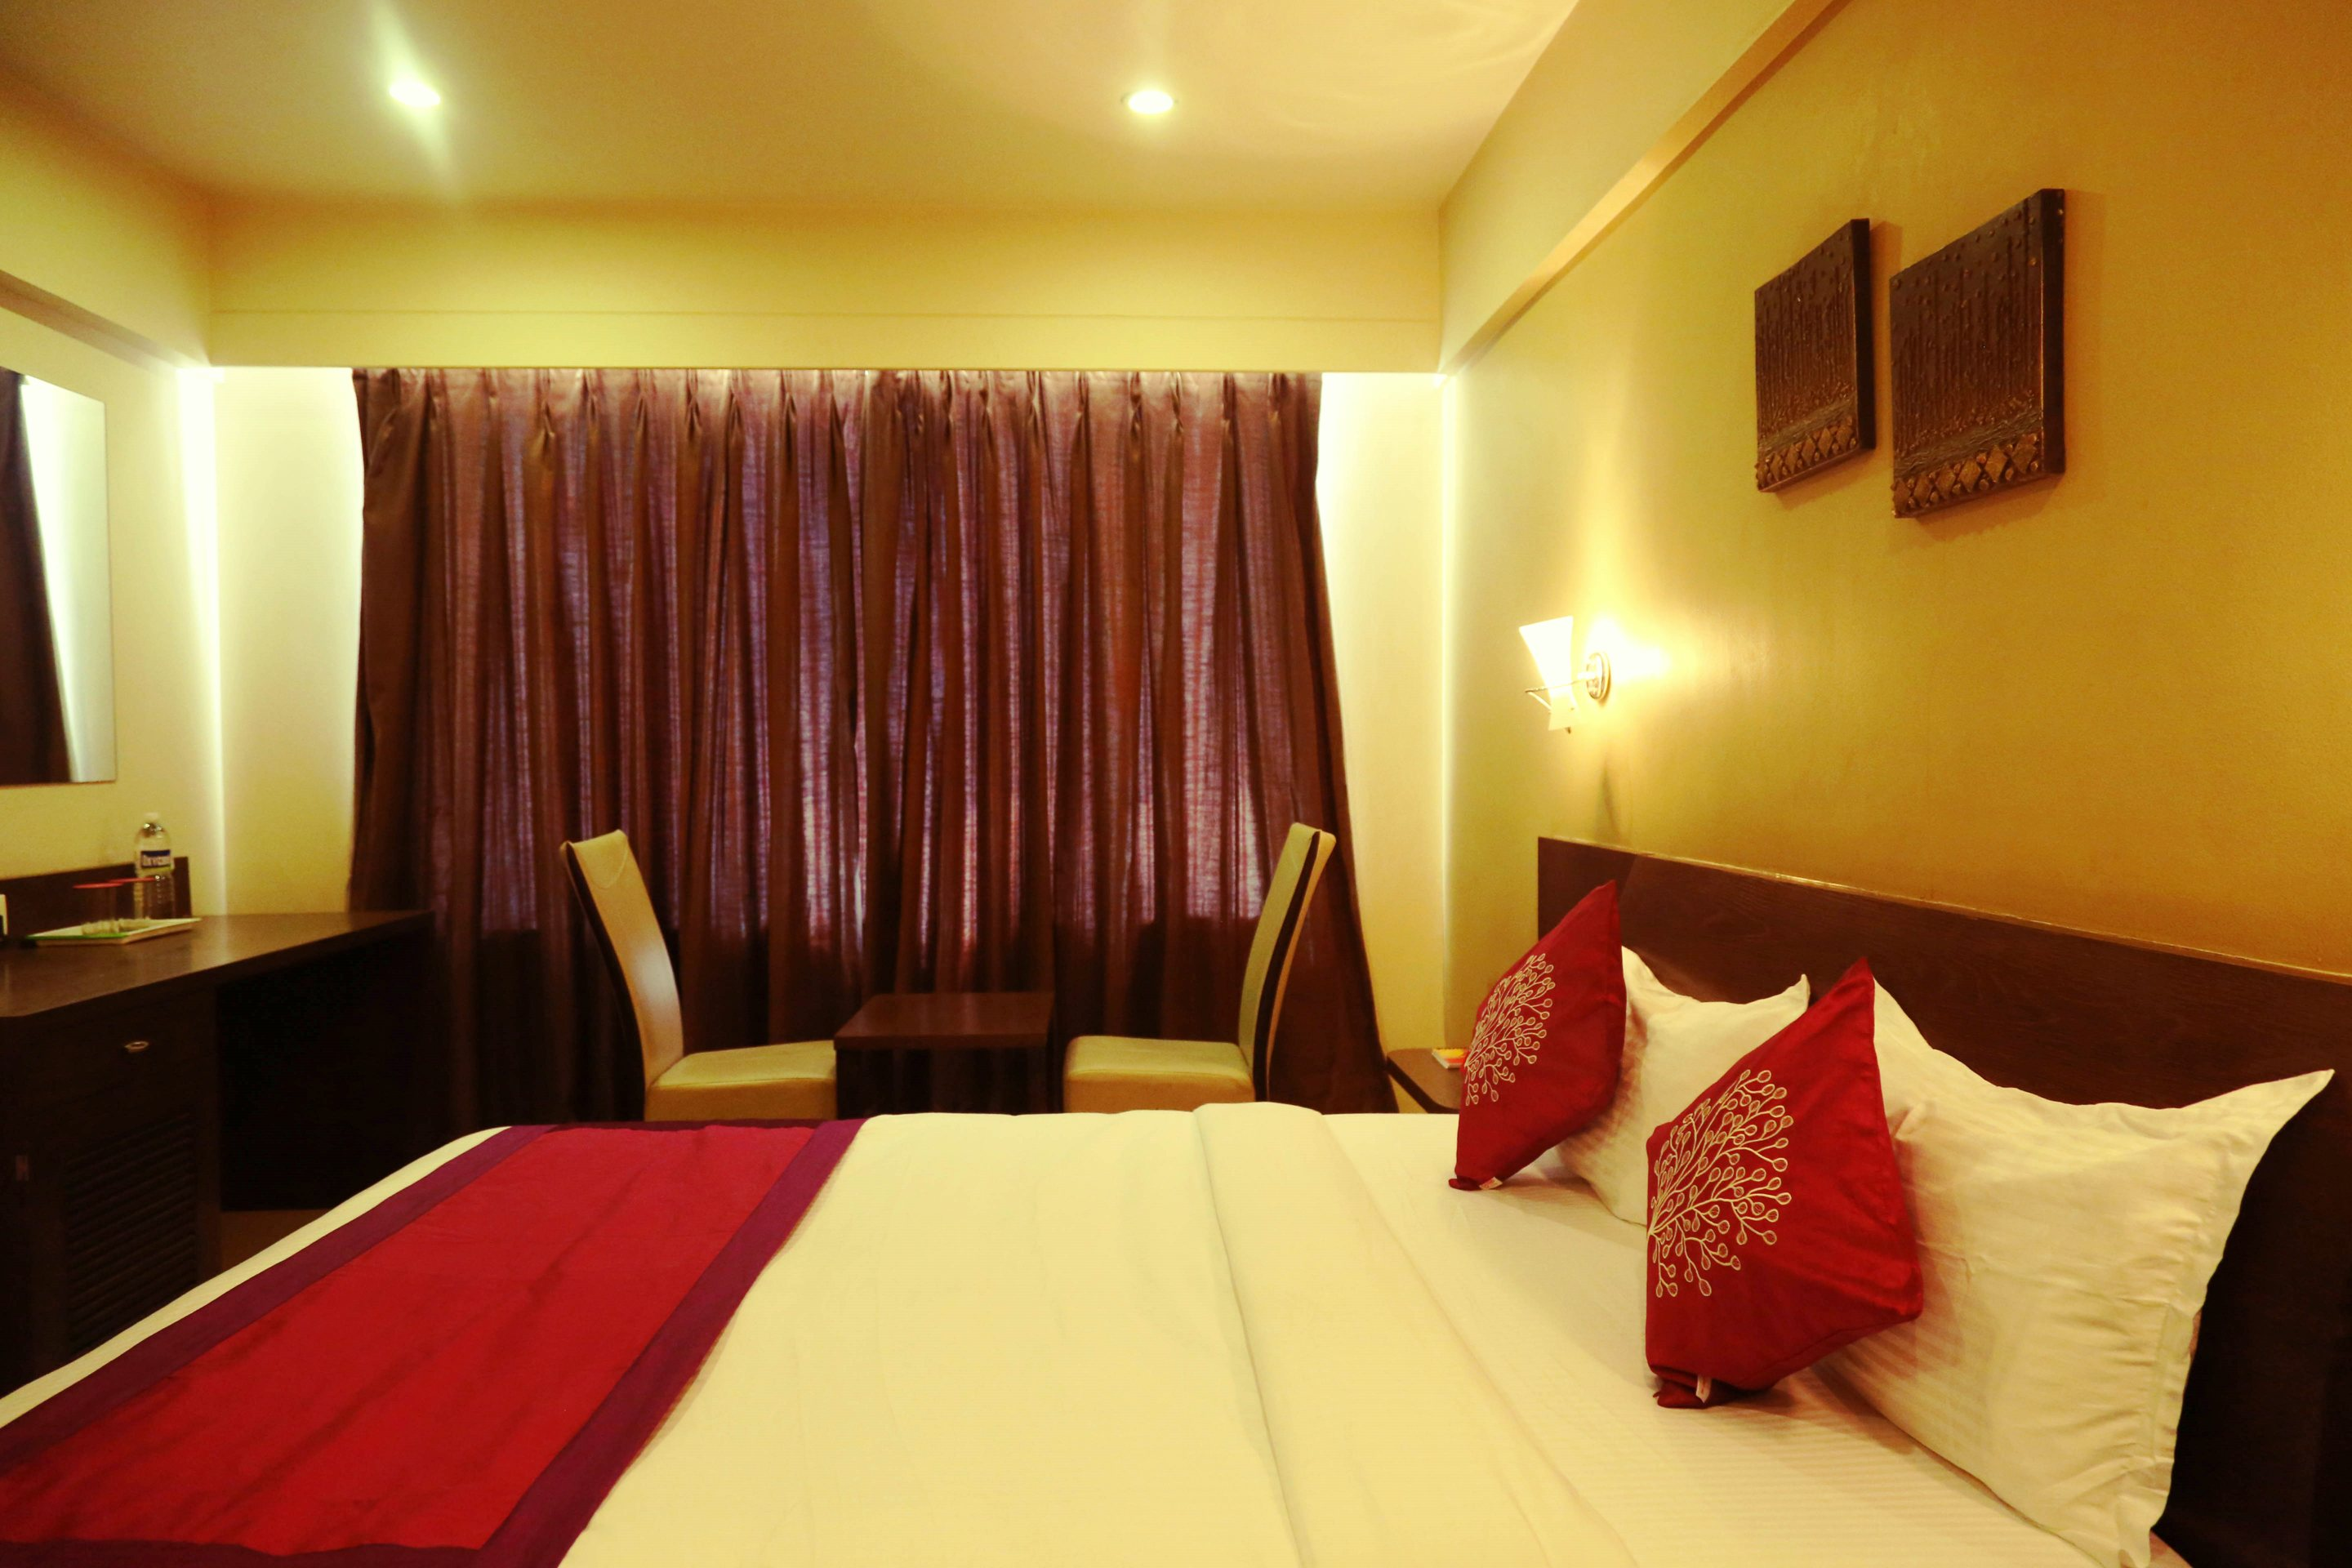 OYO 1349 Hotel Solitaire in pune